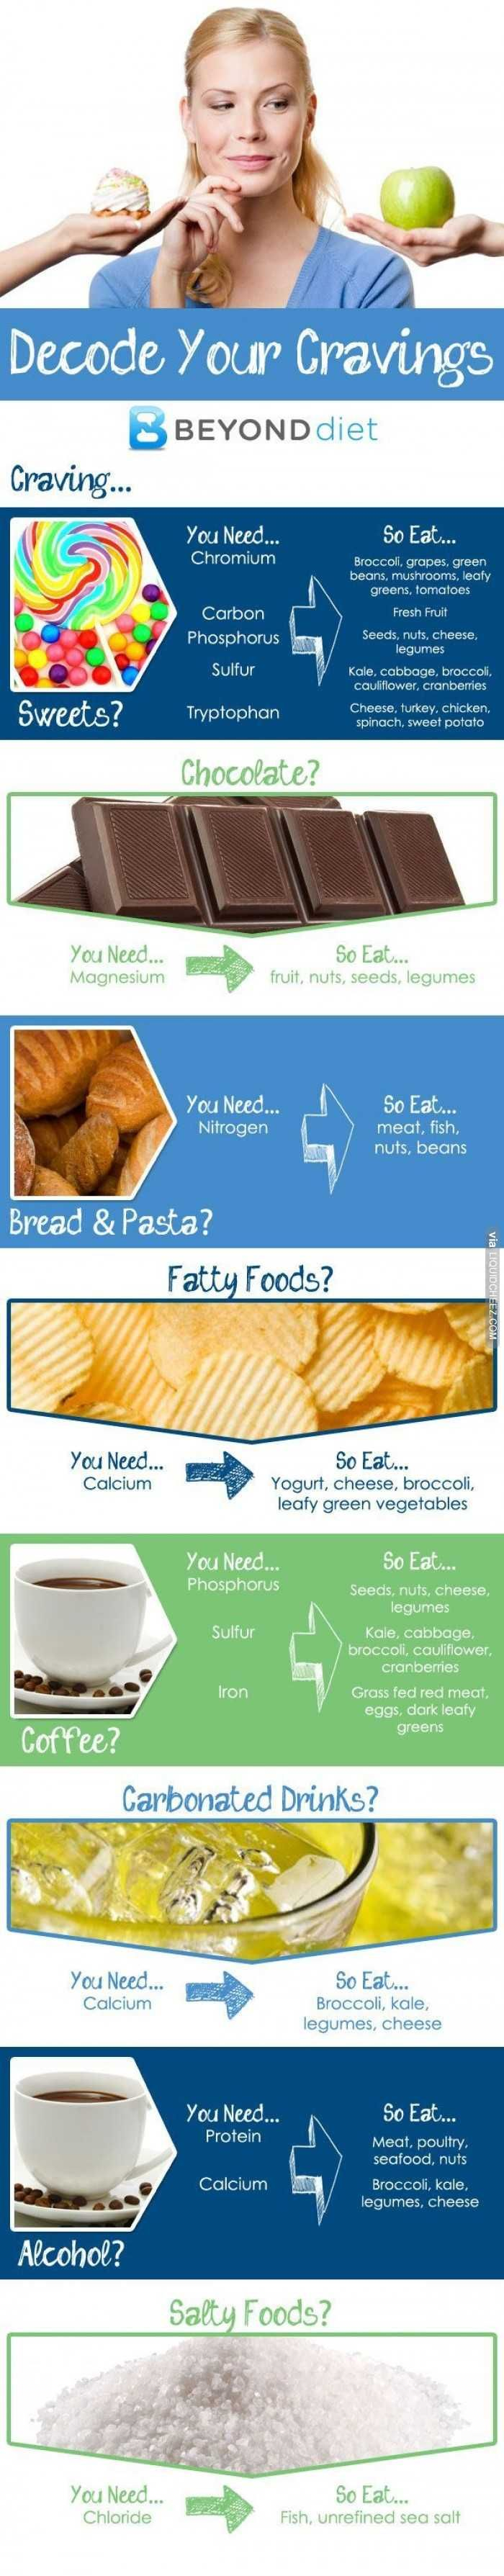 Decode your cravings. Eat healthy